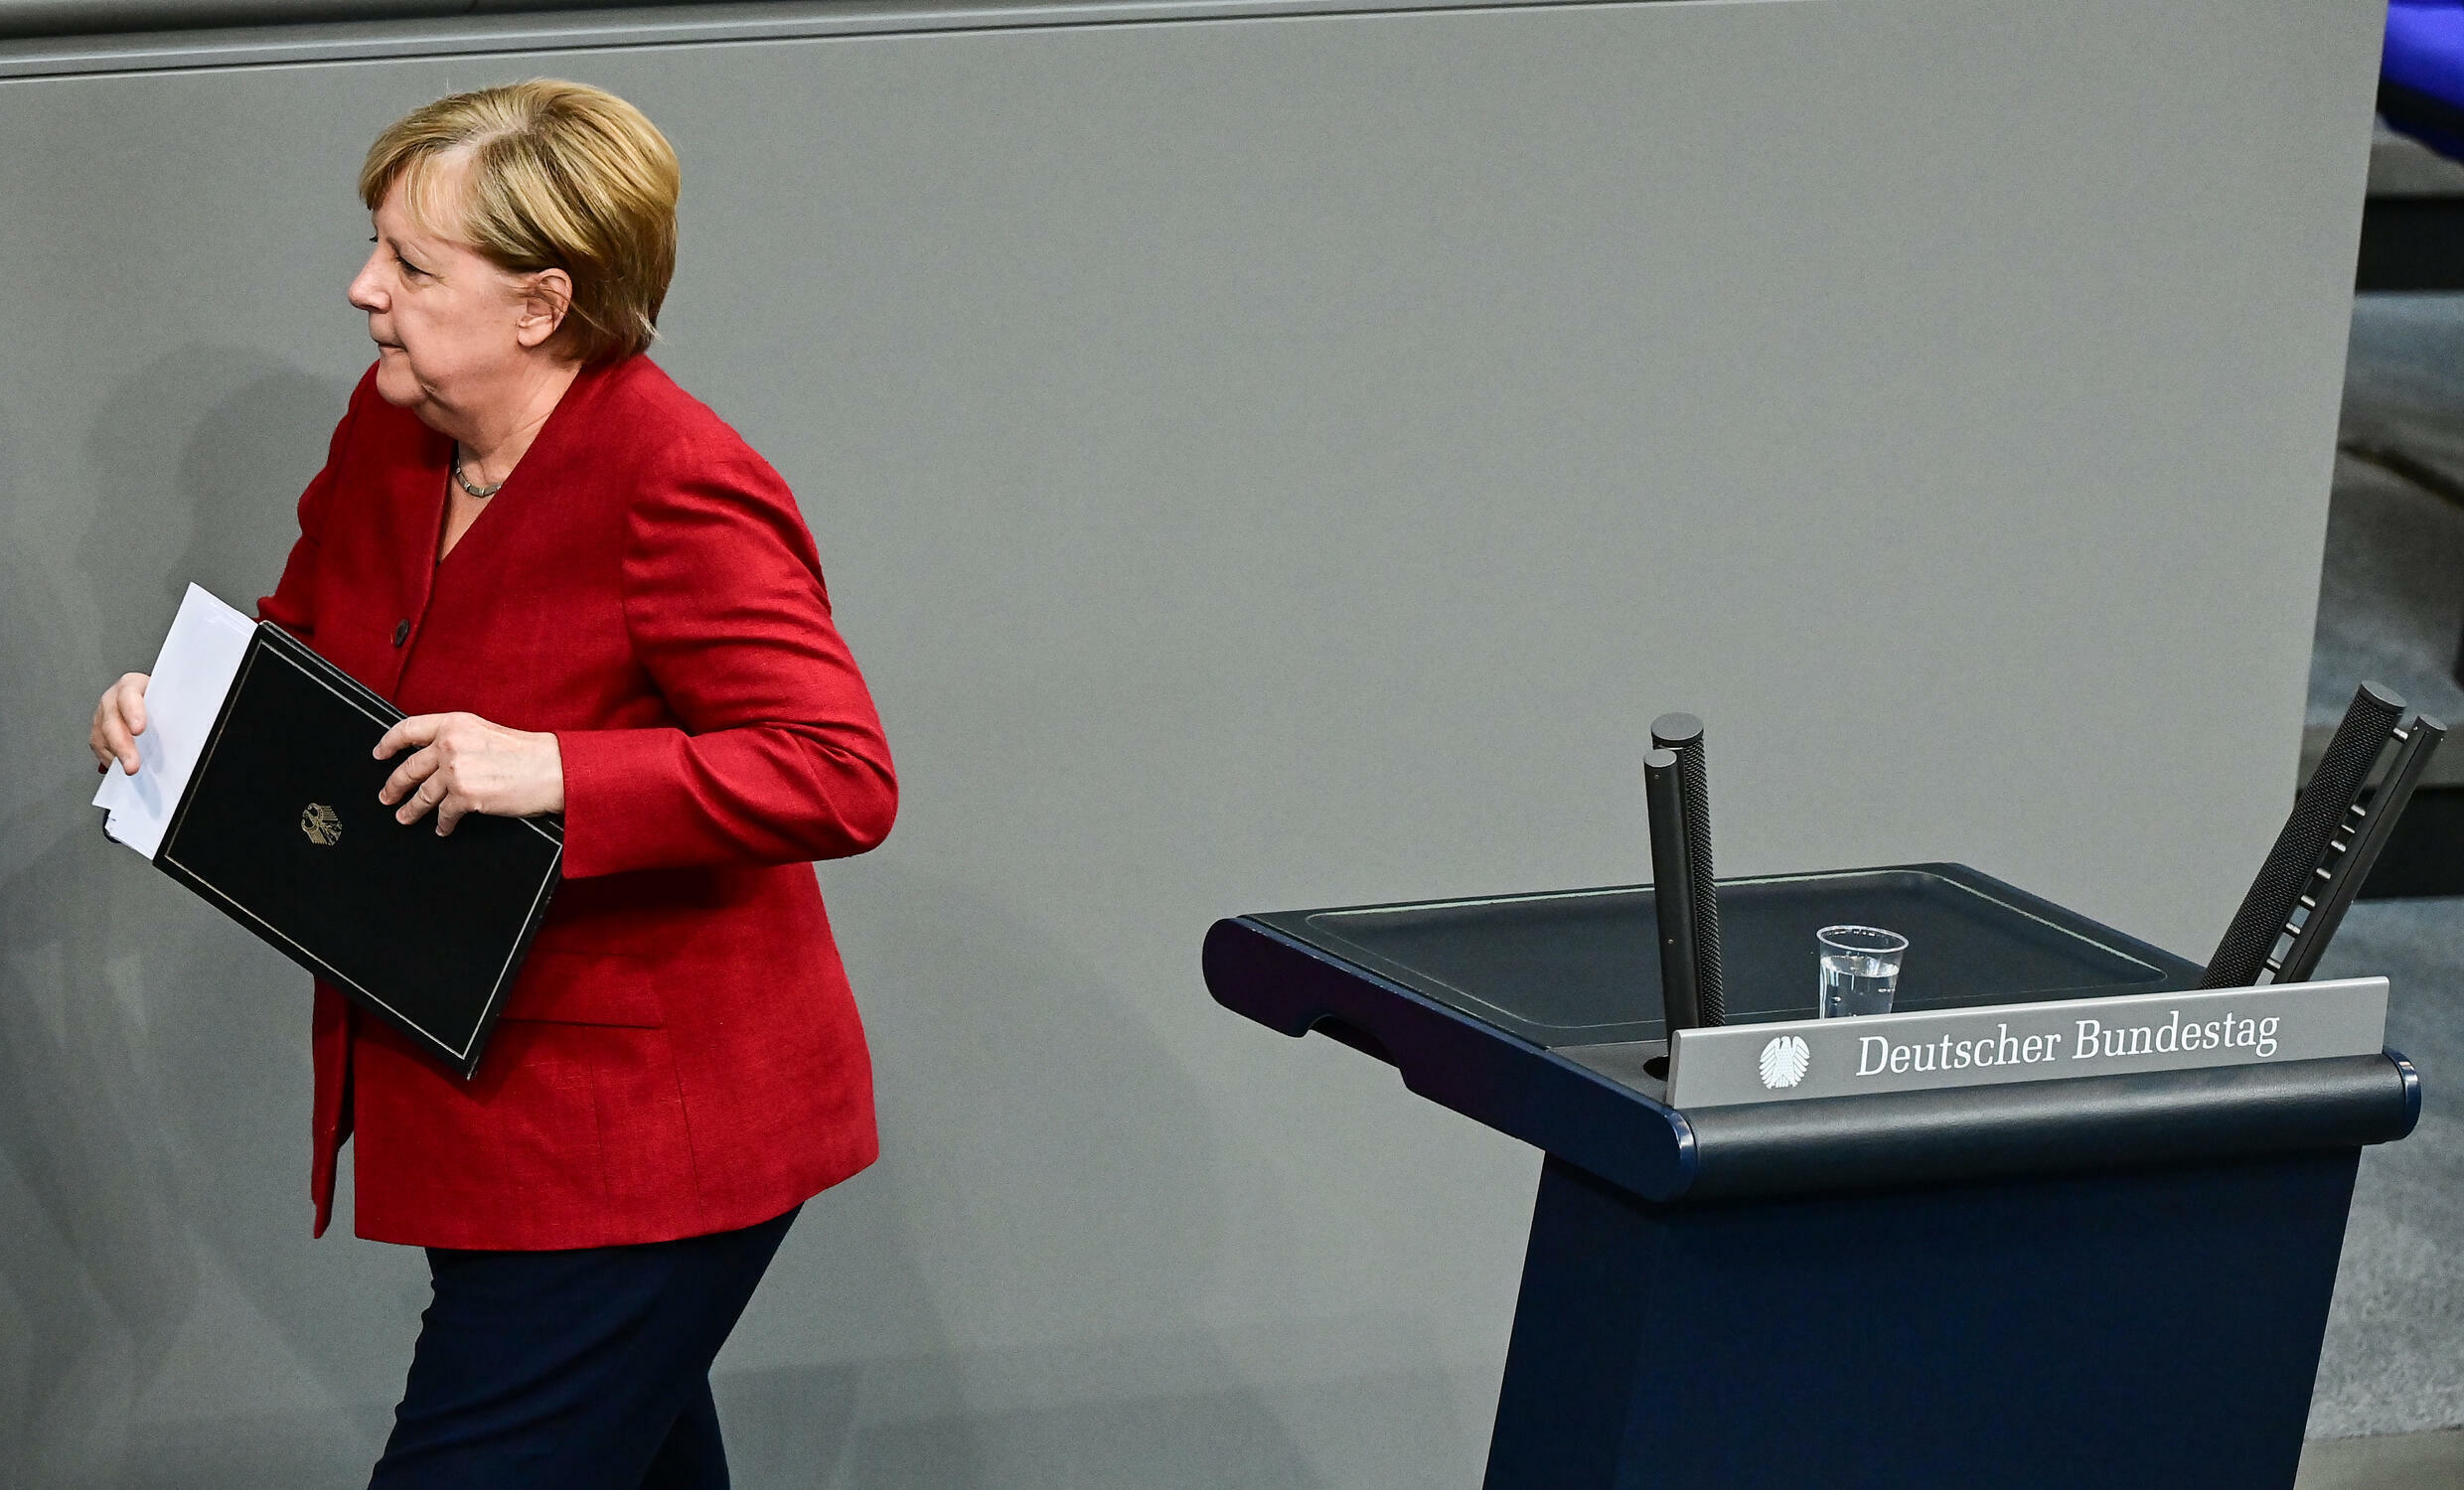 German Chancellor Angela Merkel's legacy is marked by light and shadows